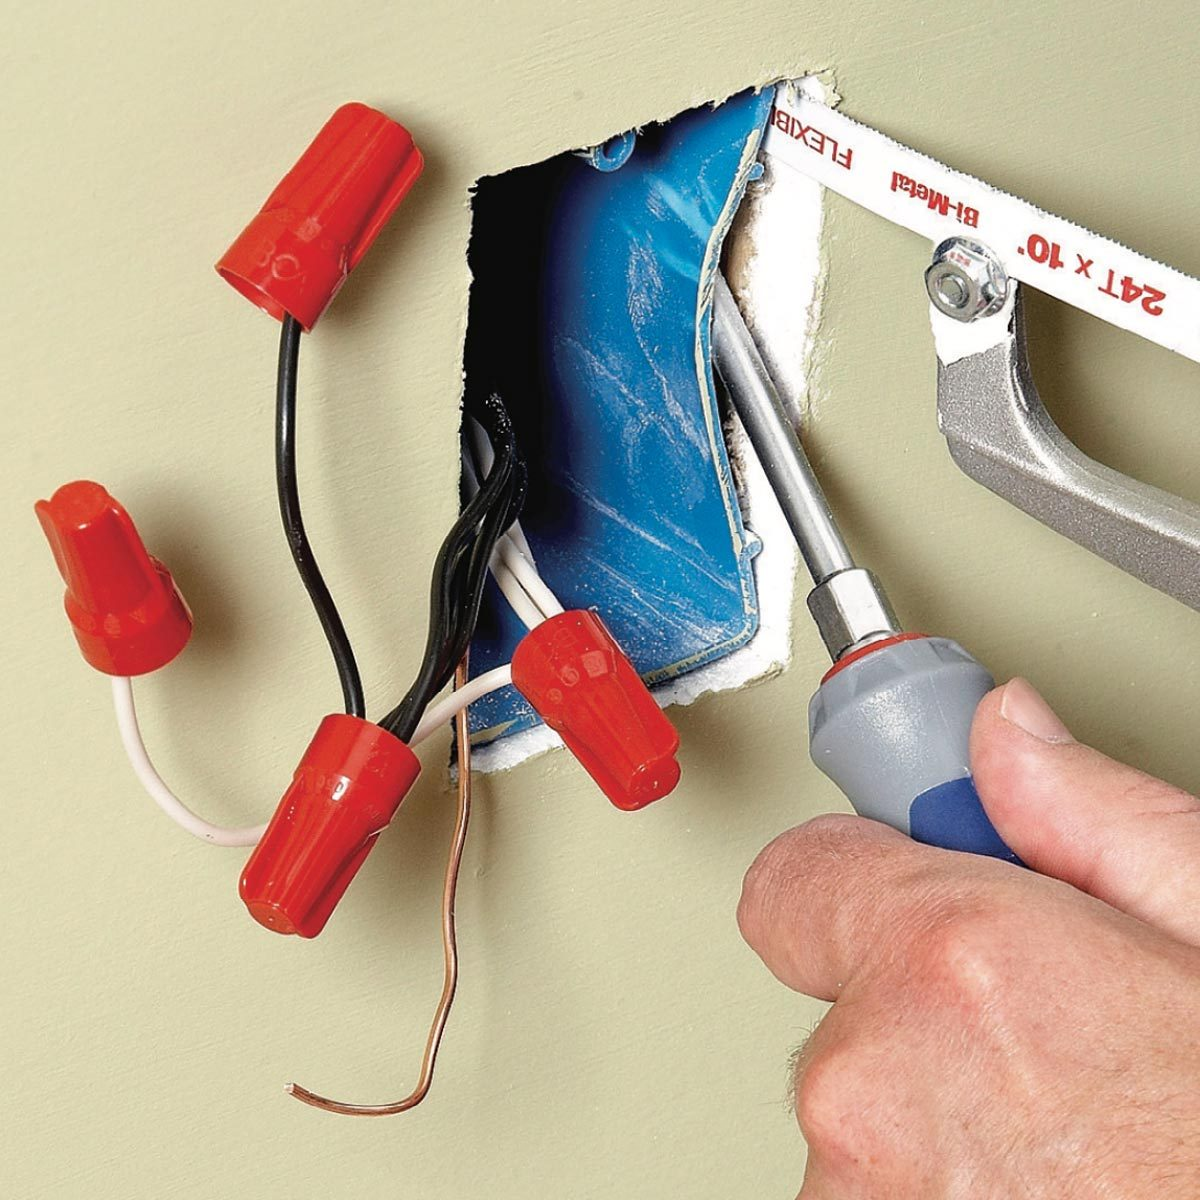 What You Should Do With Crowded Electrical Boxes The Family Handyman Wiring Sub Into Box